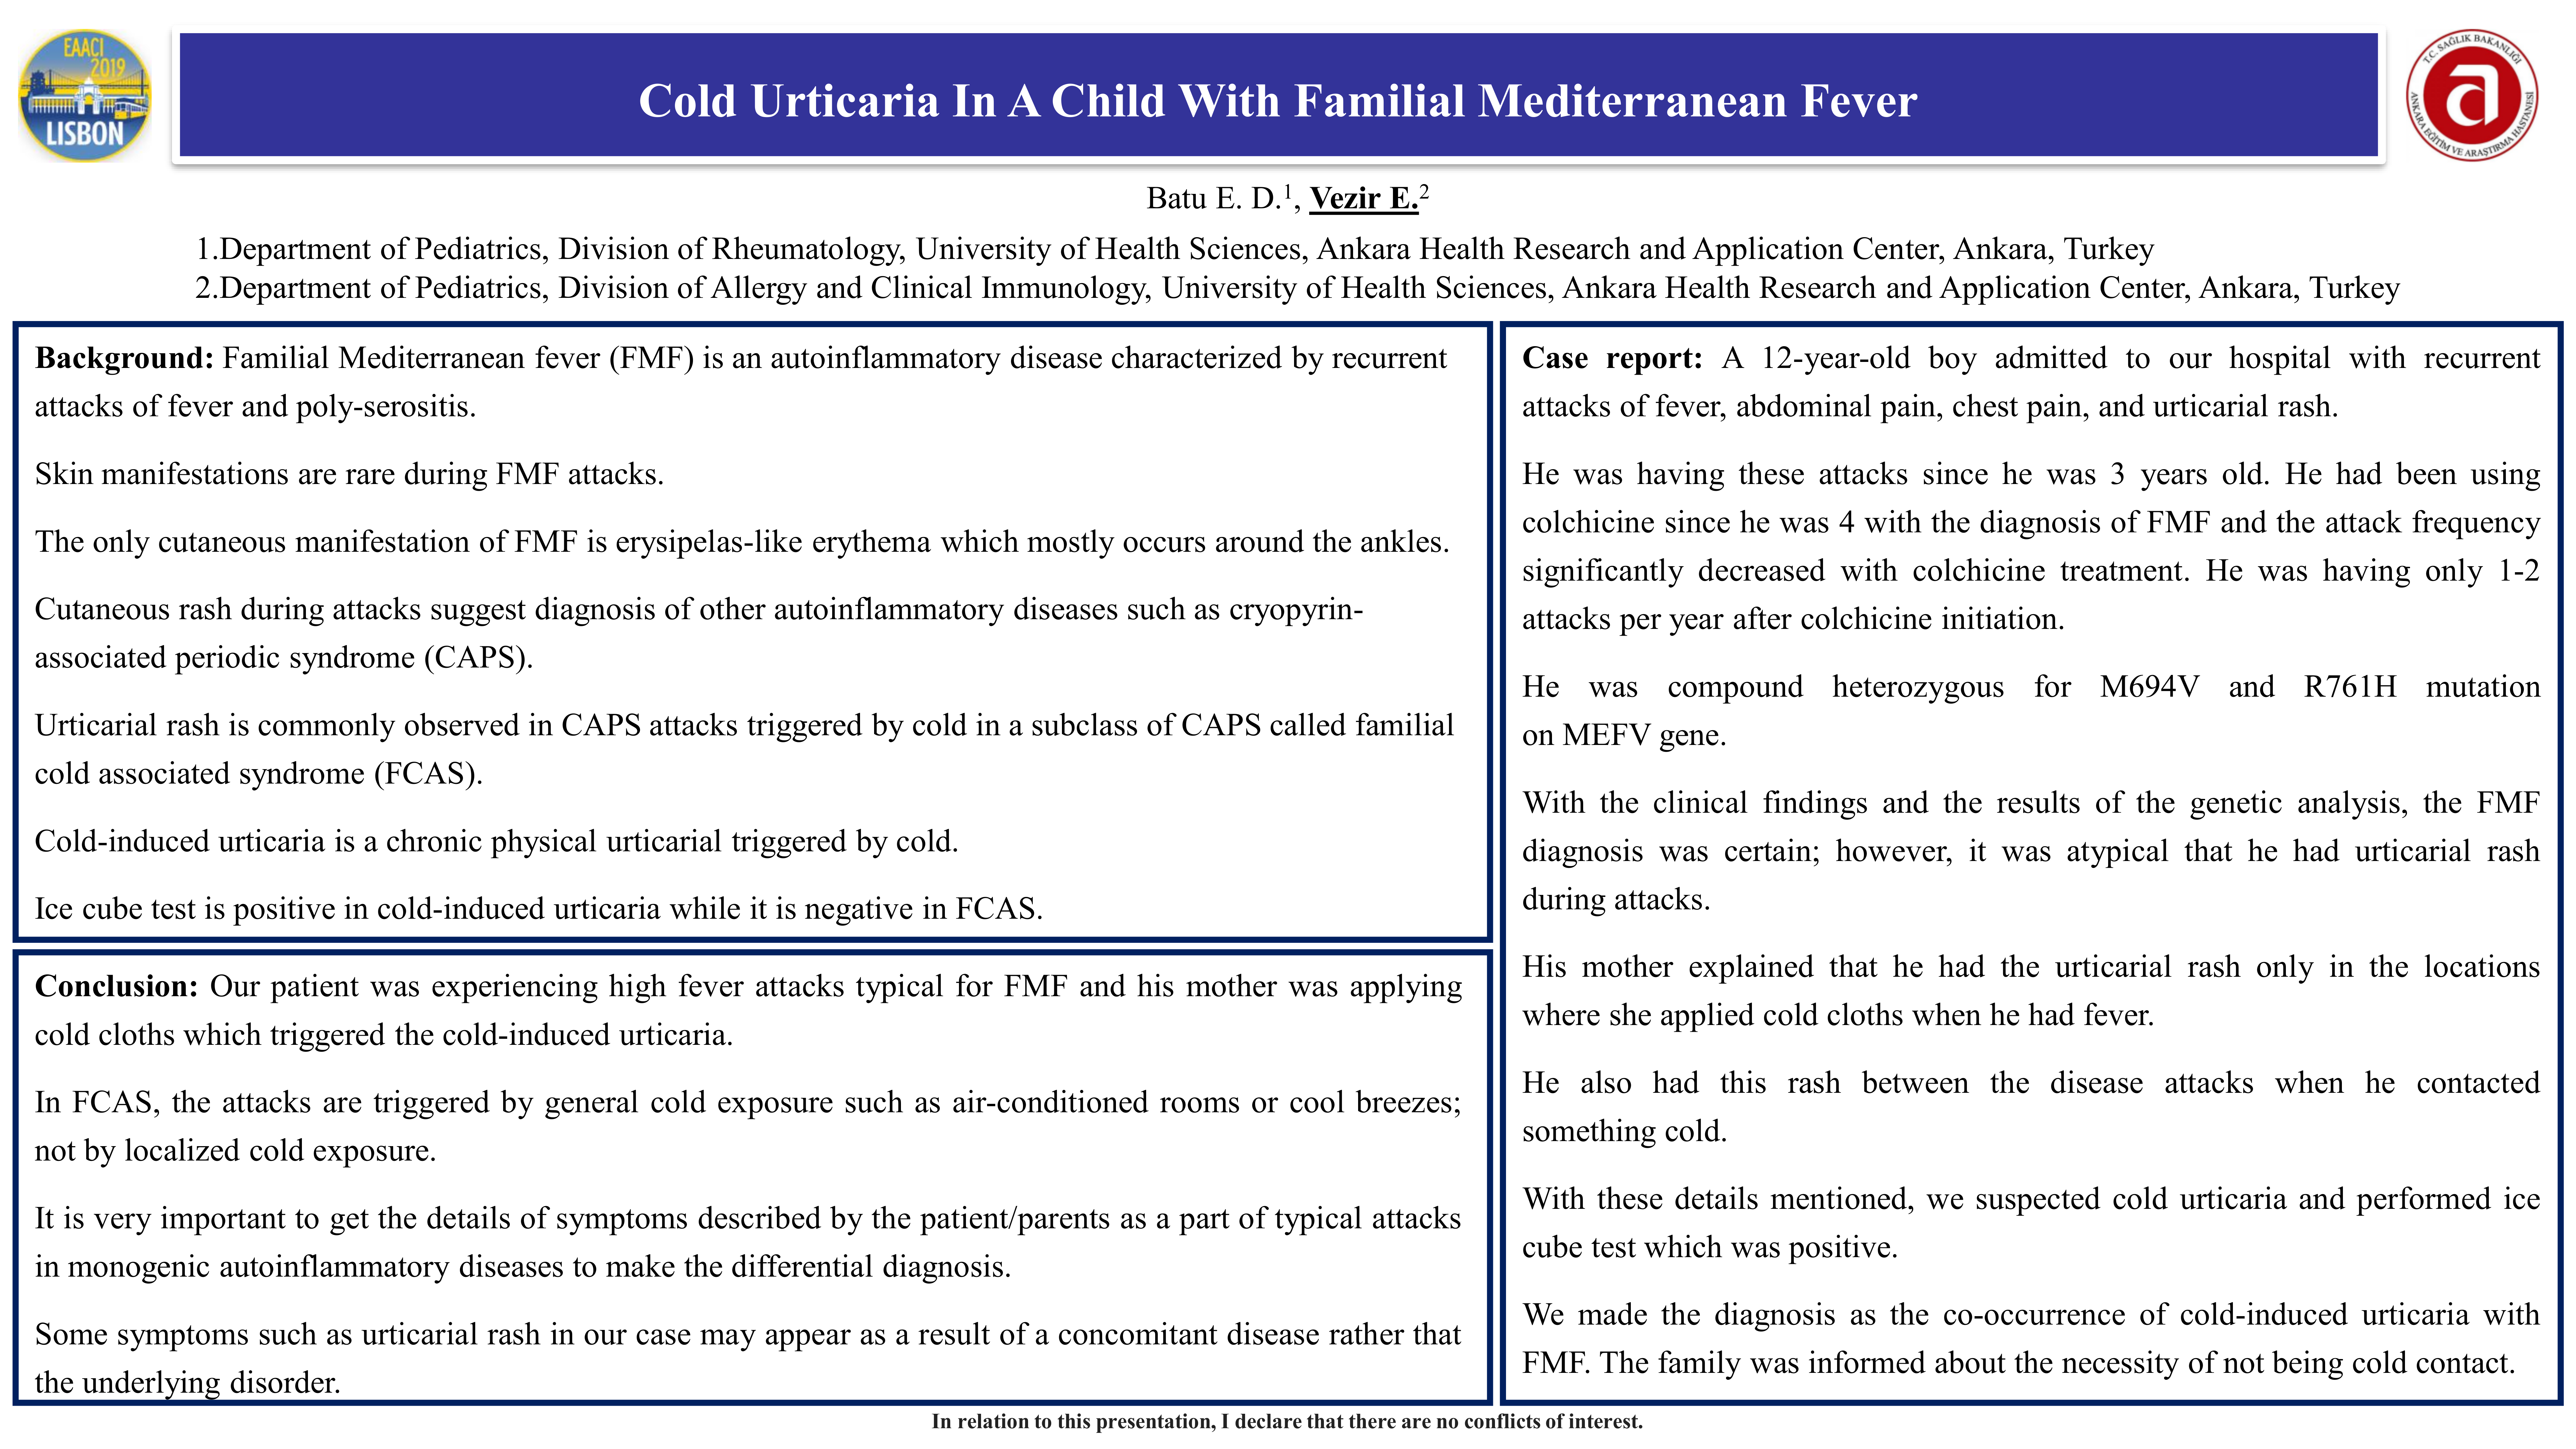 Cold urticaria in a child with familial mediterranean fever